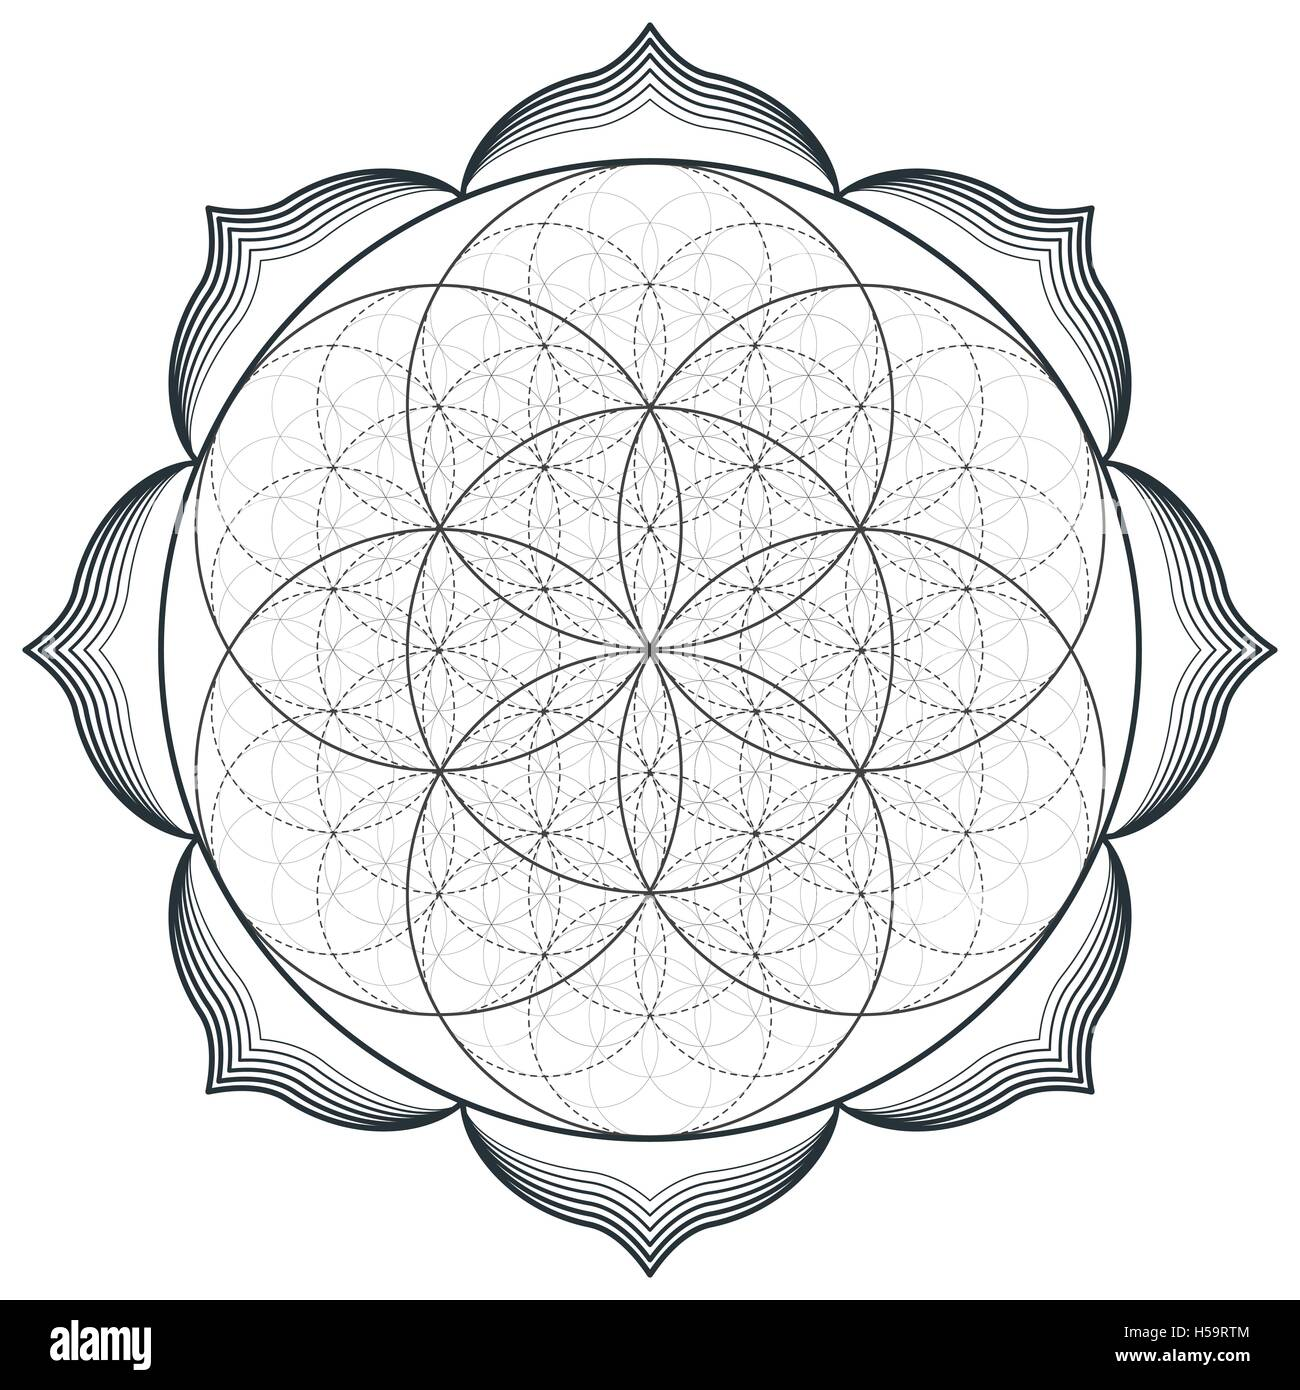 Lotus Flower Seed Stock Vector Images Alamy